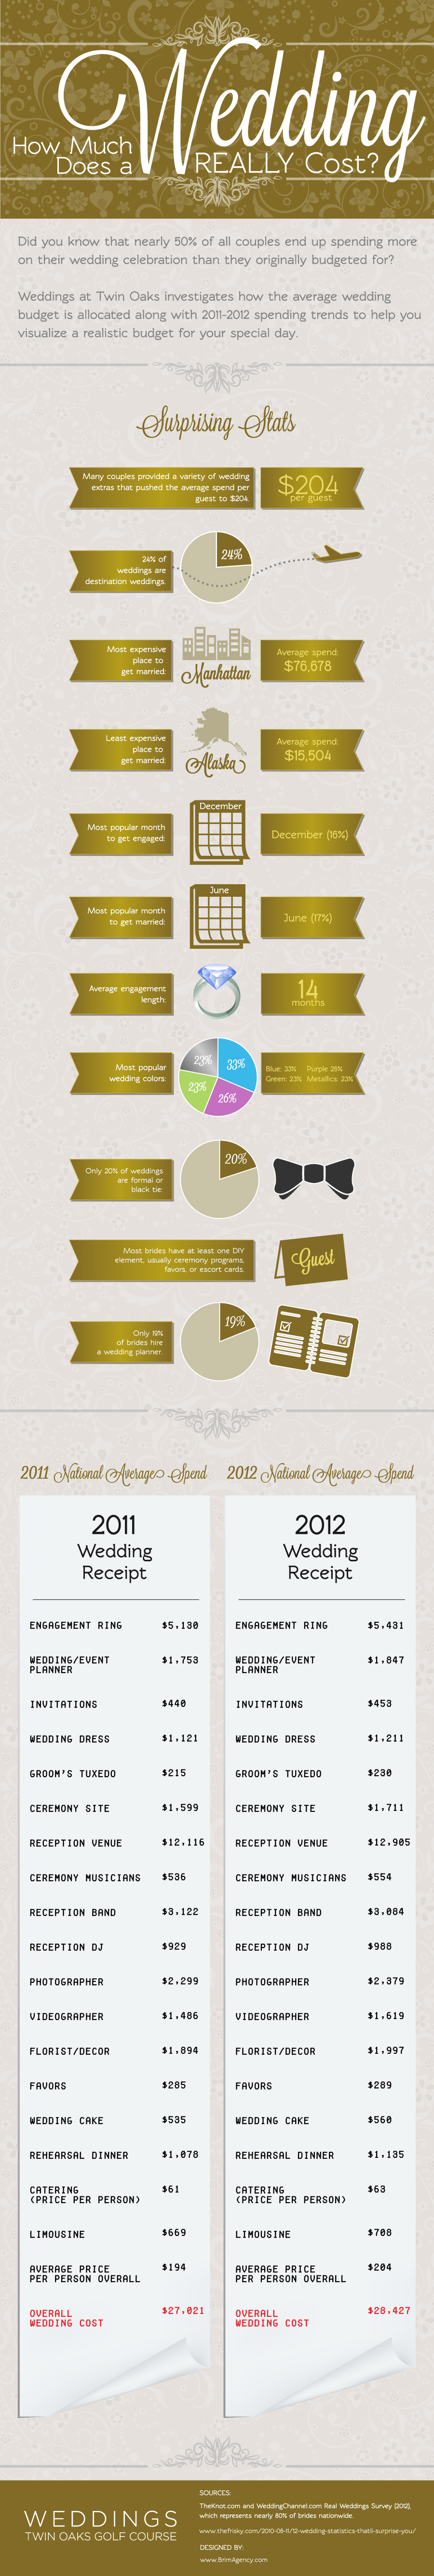 How Much Does A Wedding Cost?